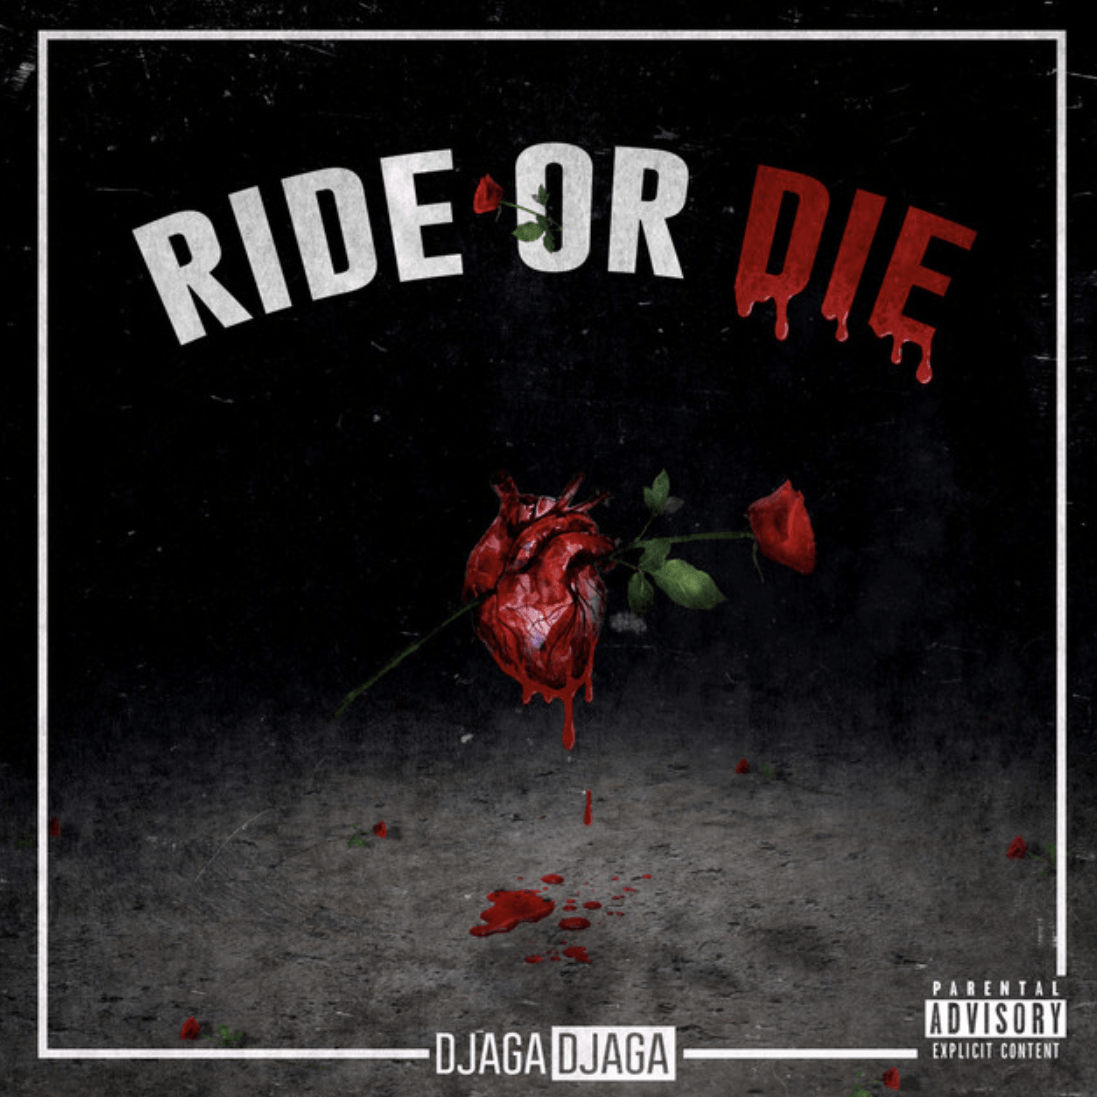 Ride or die artwork